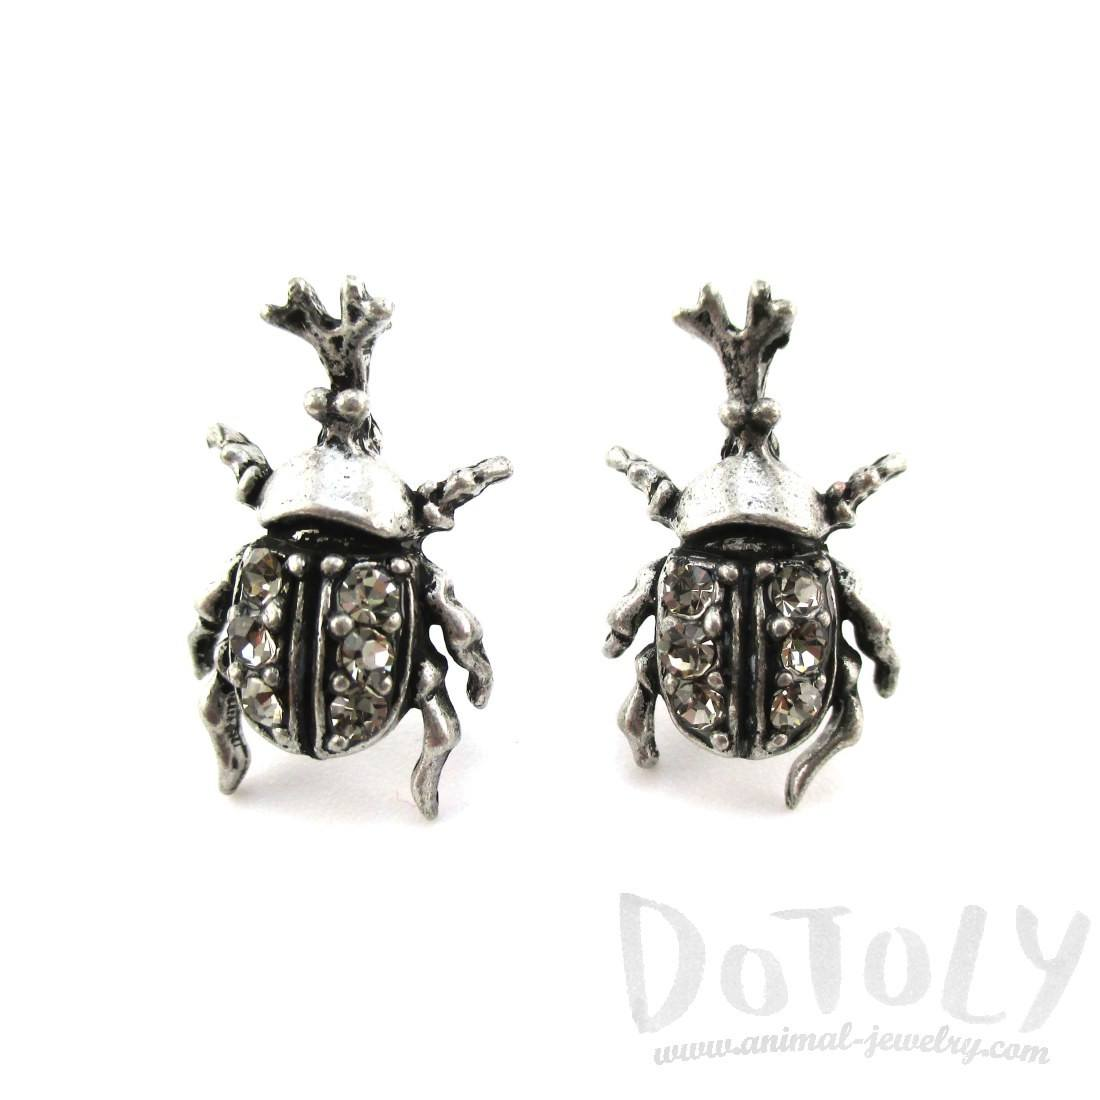 Rhino Beetle Shaped Rhinestone Stud Earrings in Silver